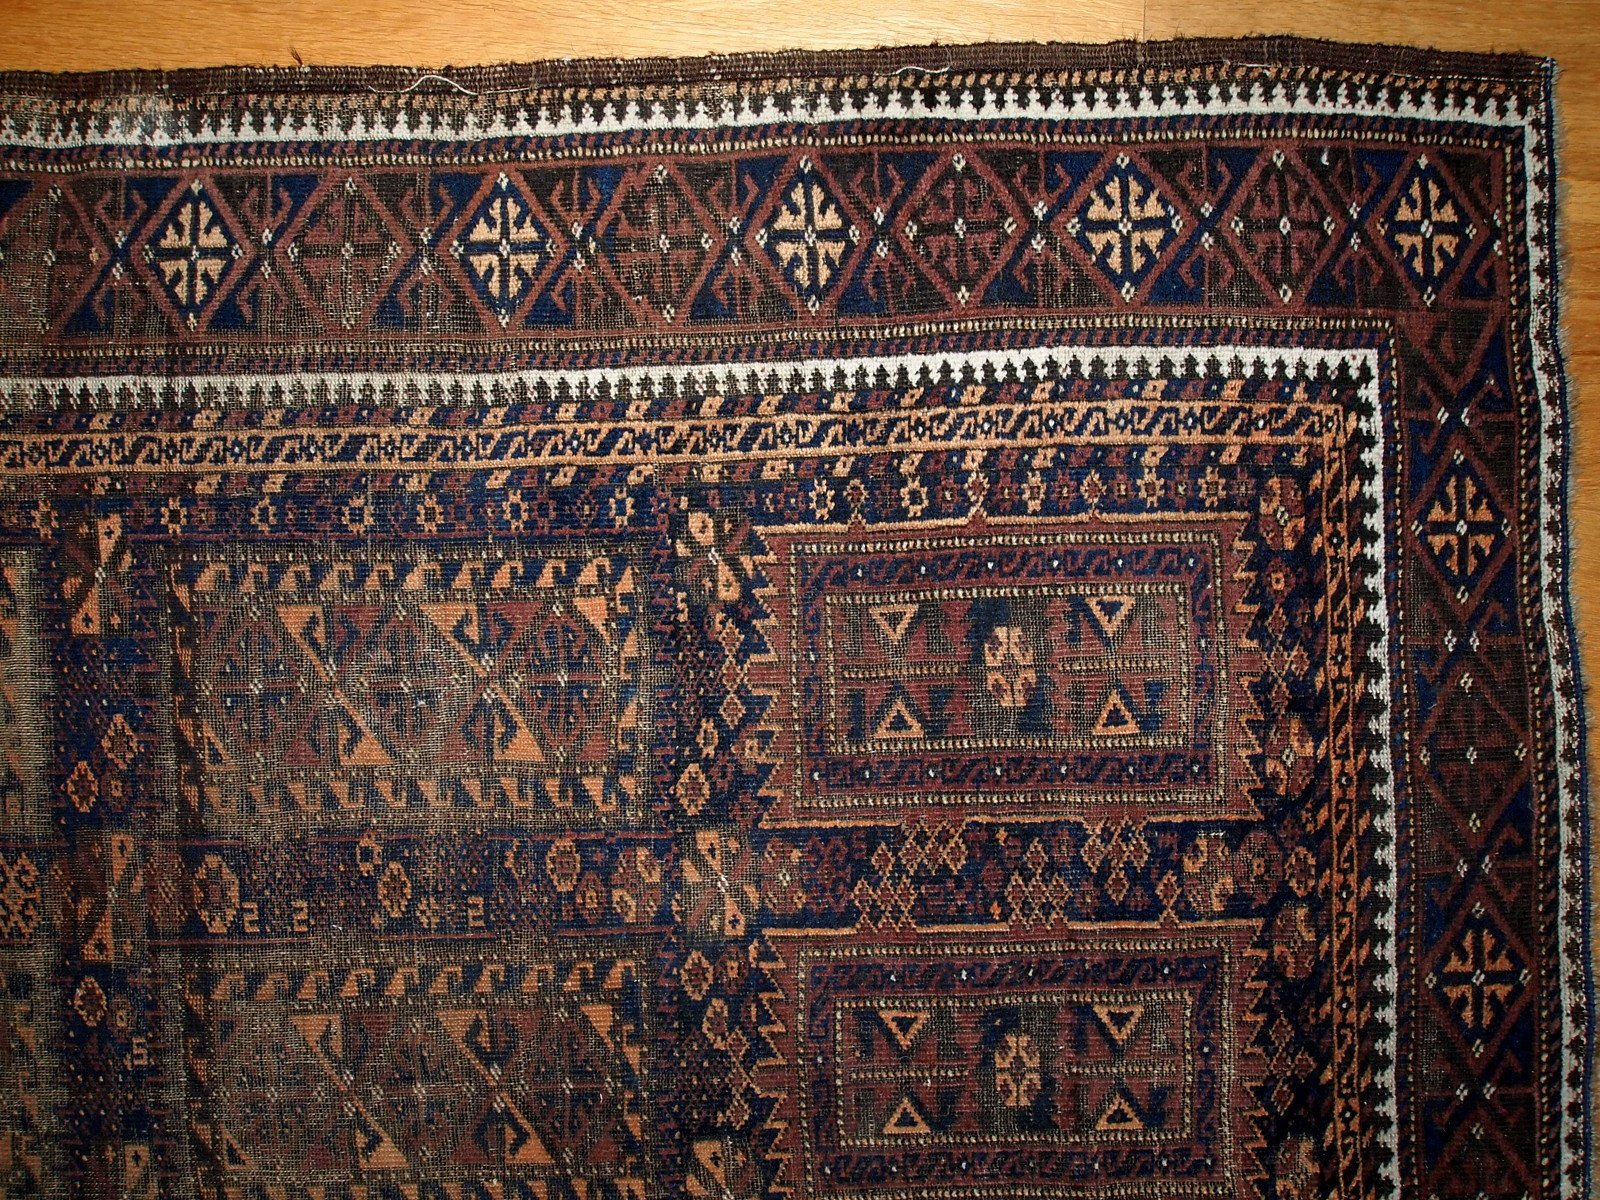 antique handmade afghan baluch rug, 1900s for sale at pamono